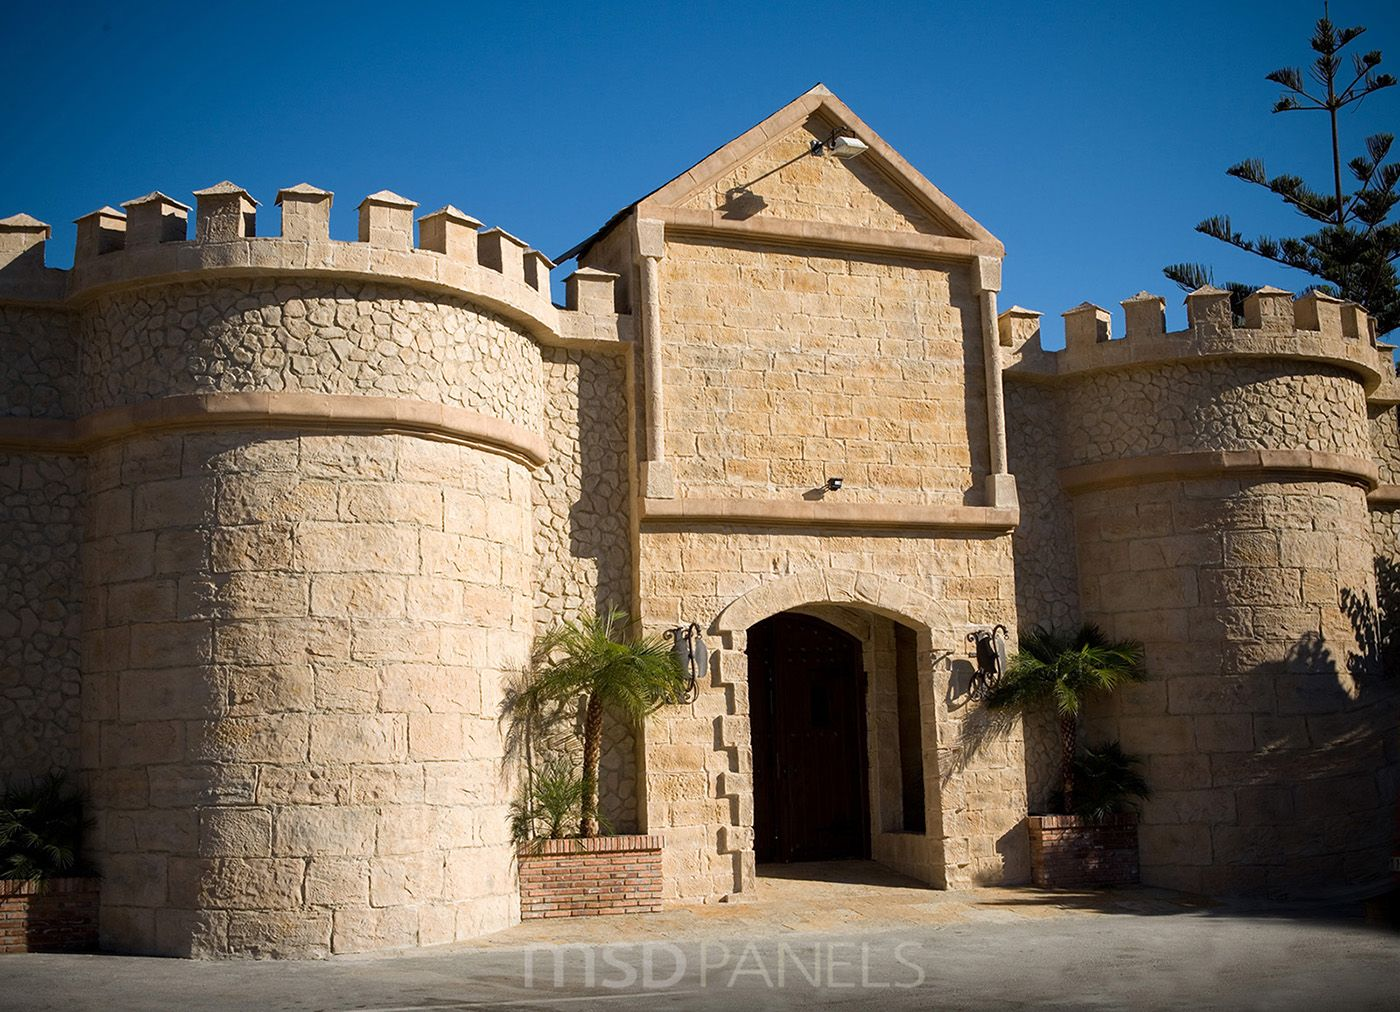 Castle with decorative stone panels stone panels pinterest panel castellanos y piedra - Paneles sinteticos decorativos ...